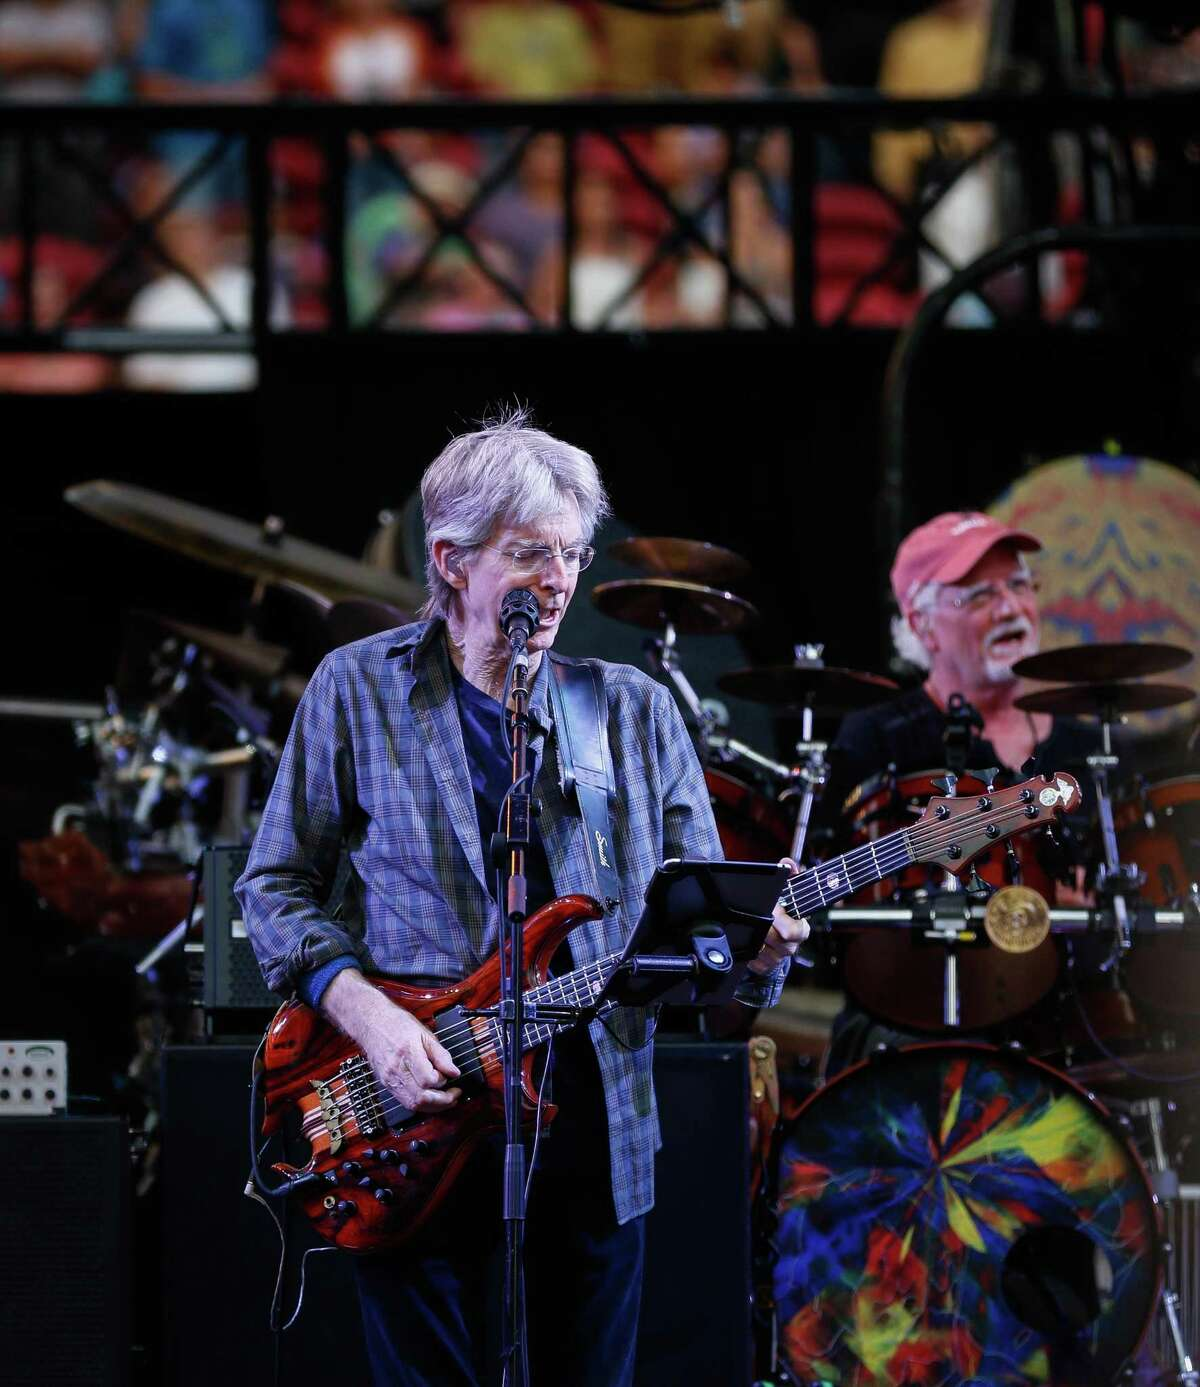 Phil Lesh performs at Levi's Stadium in 2015. The musicians didn't use a band name for the Fare Thee Well tour.